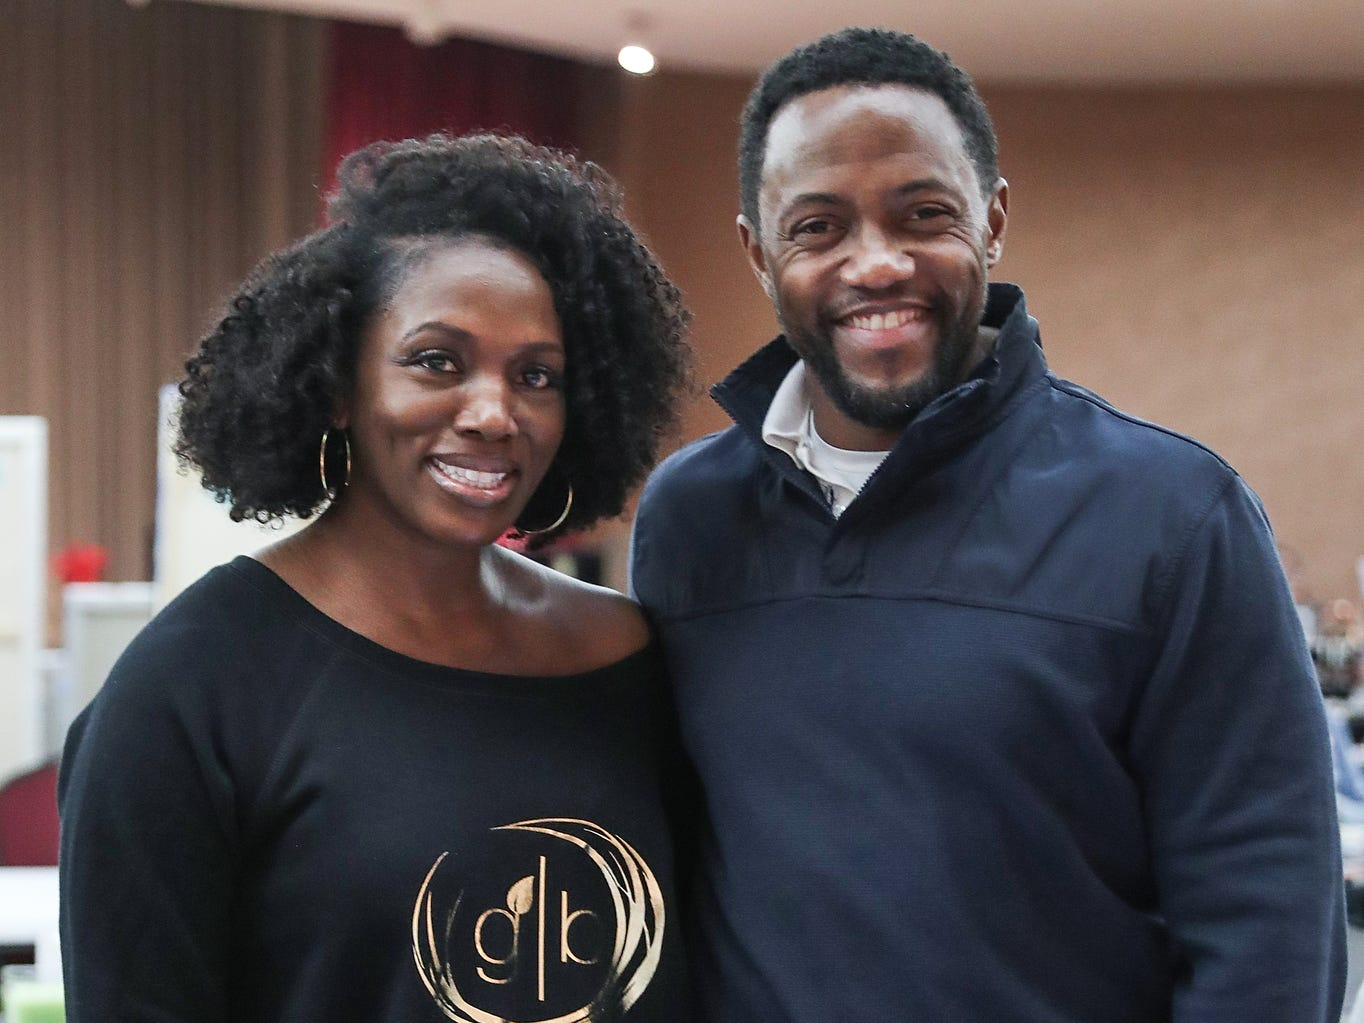 Marla and James Lewis, of Carmel, sell their Grow Bar Organics hair and beard care products at a market showcasing more than 65 women and minority-owned small businesses at the Murat Shrine Temple in Indianapolis, Saturday, Nov. 24, 2018. The fifth annual event is part of Small Business Saturday, launched nationally by American Express eight years ago to help independently owned businesses bounce back from the recession.